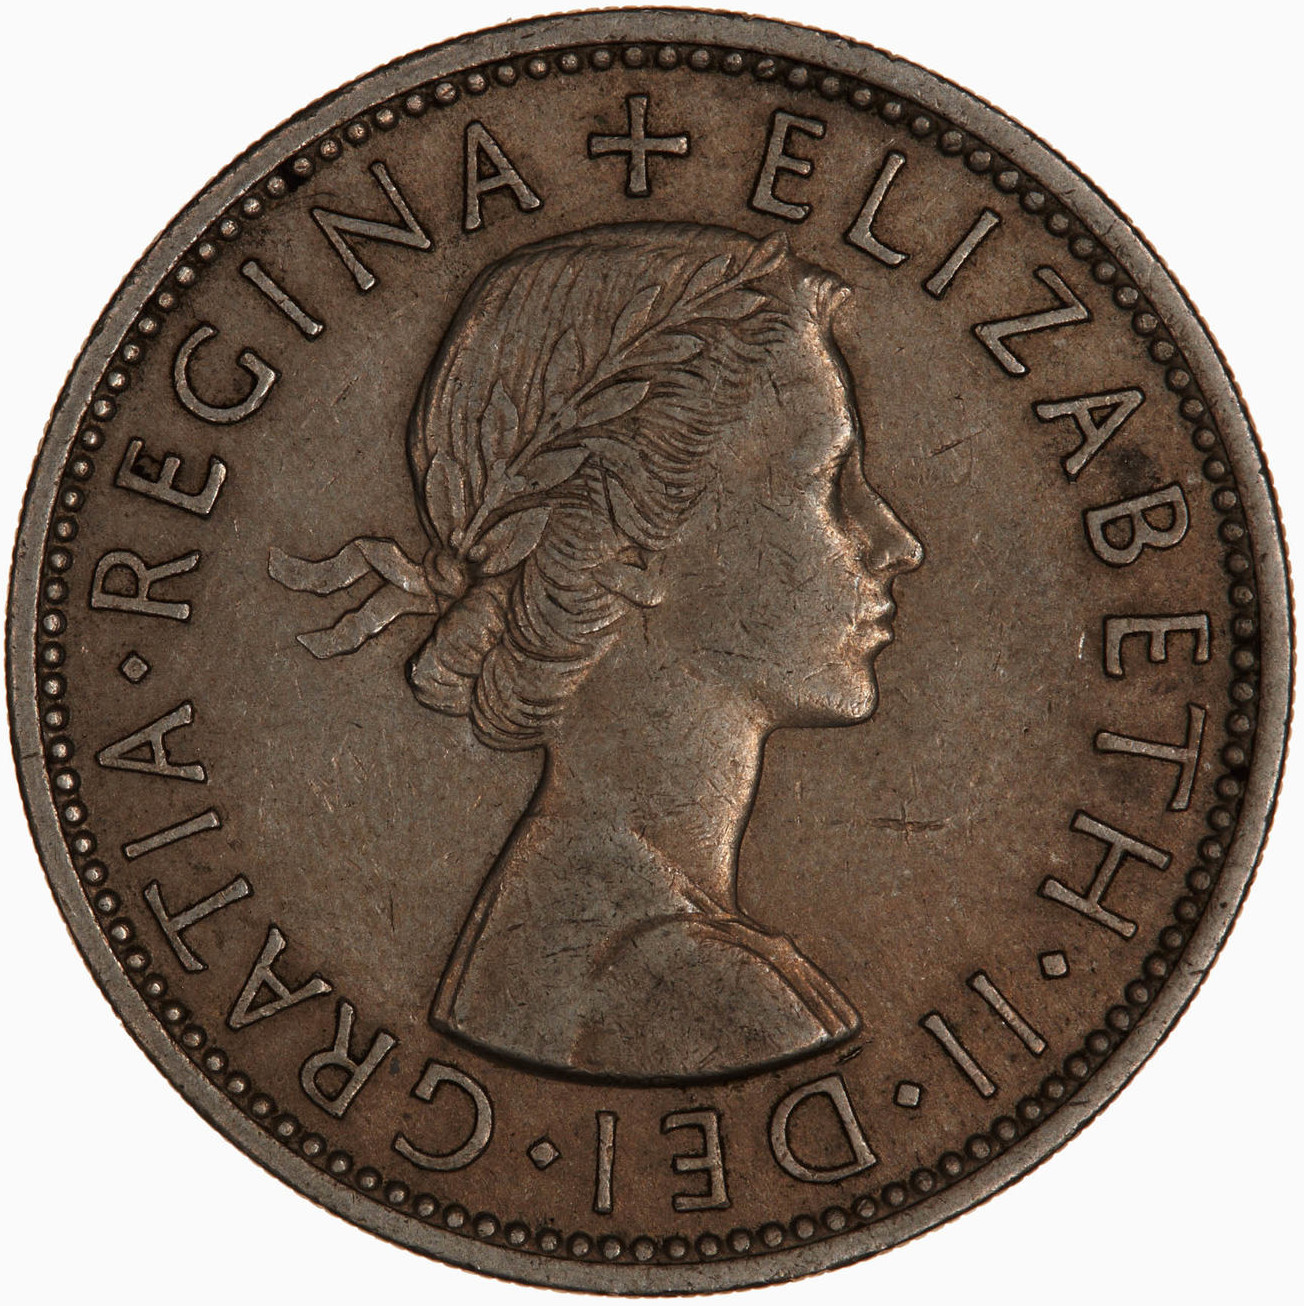 Two Shillings (Florin) 1954: Photo Coin - Florin (2 Shillings), Elizabeth II, Great Britain, 1954